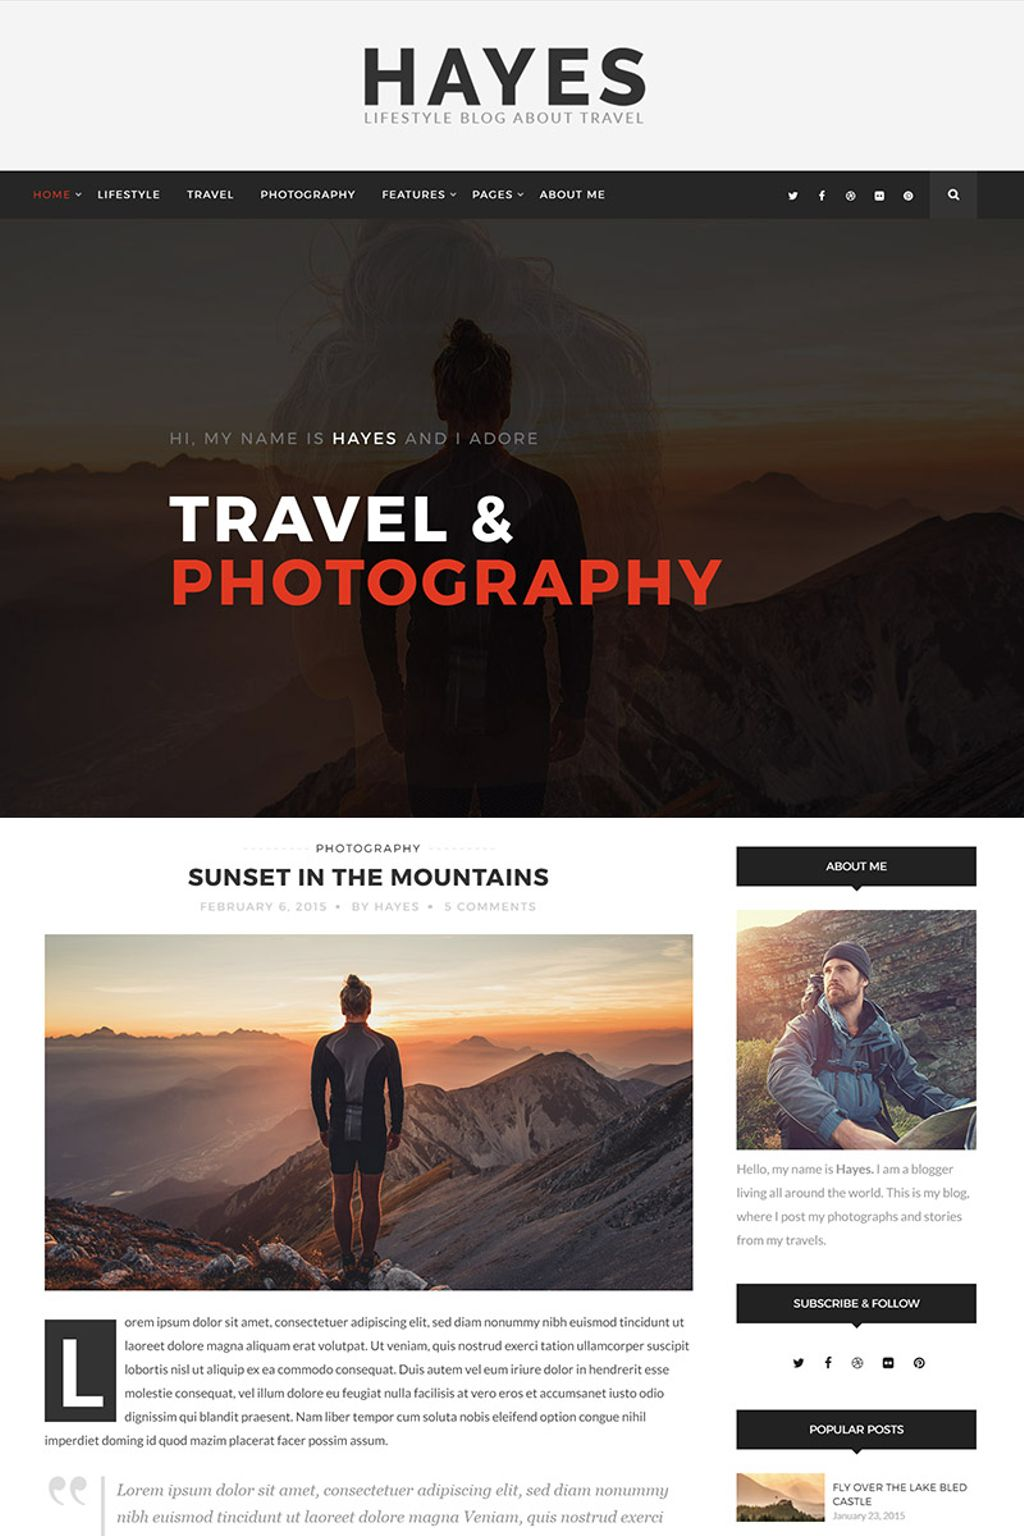 Website Design Template 65620 - clean creative fashion food hipster instagram lifestyle minimal personal photography travel wordpress grid masonry sidebar fullwidth mountains